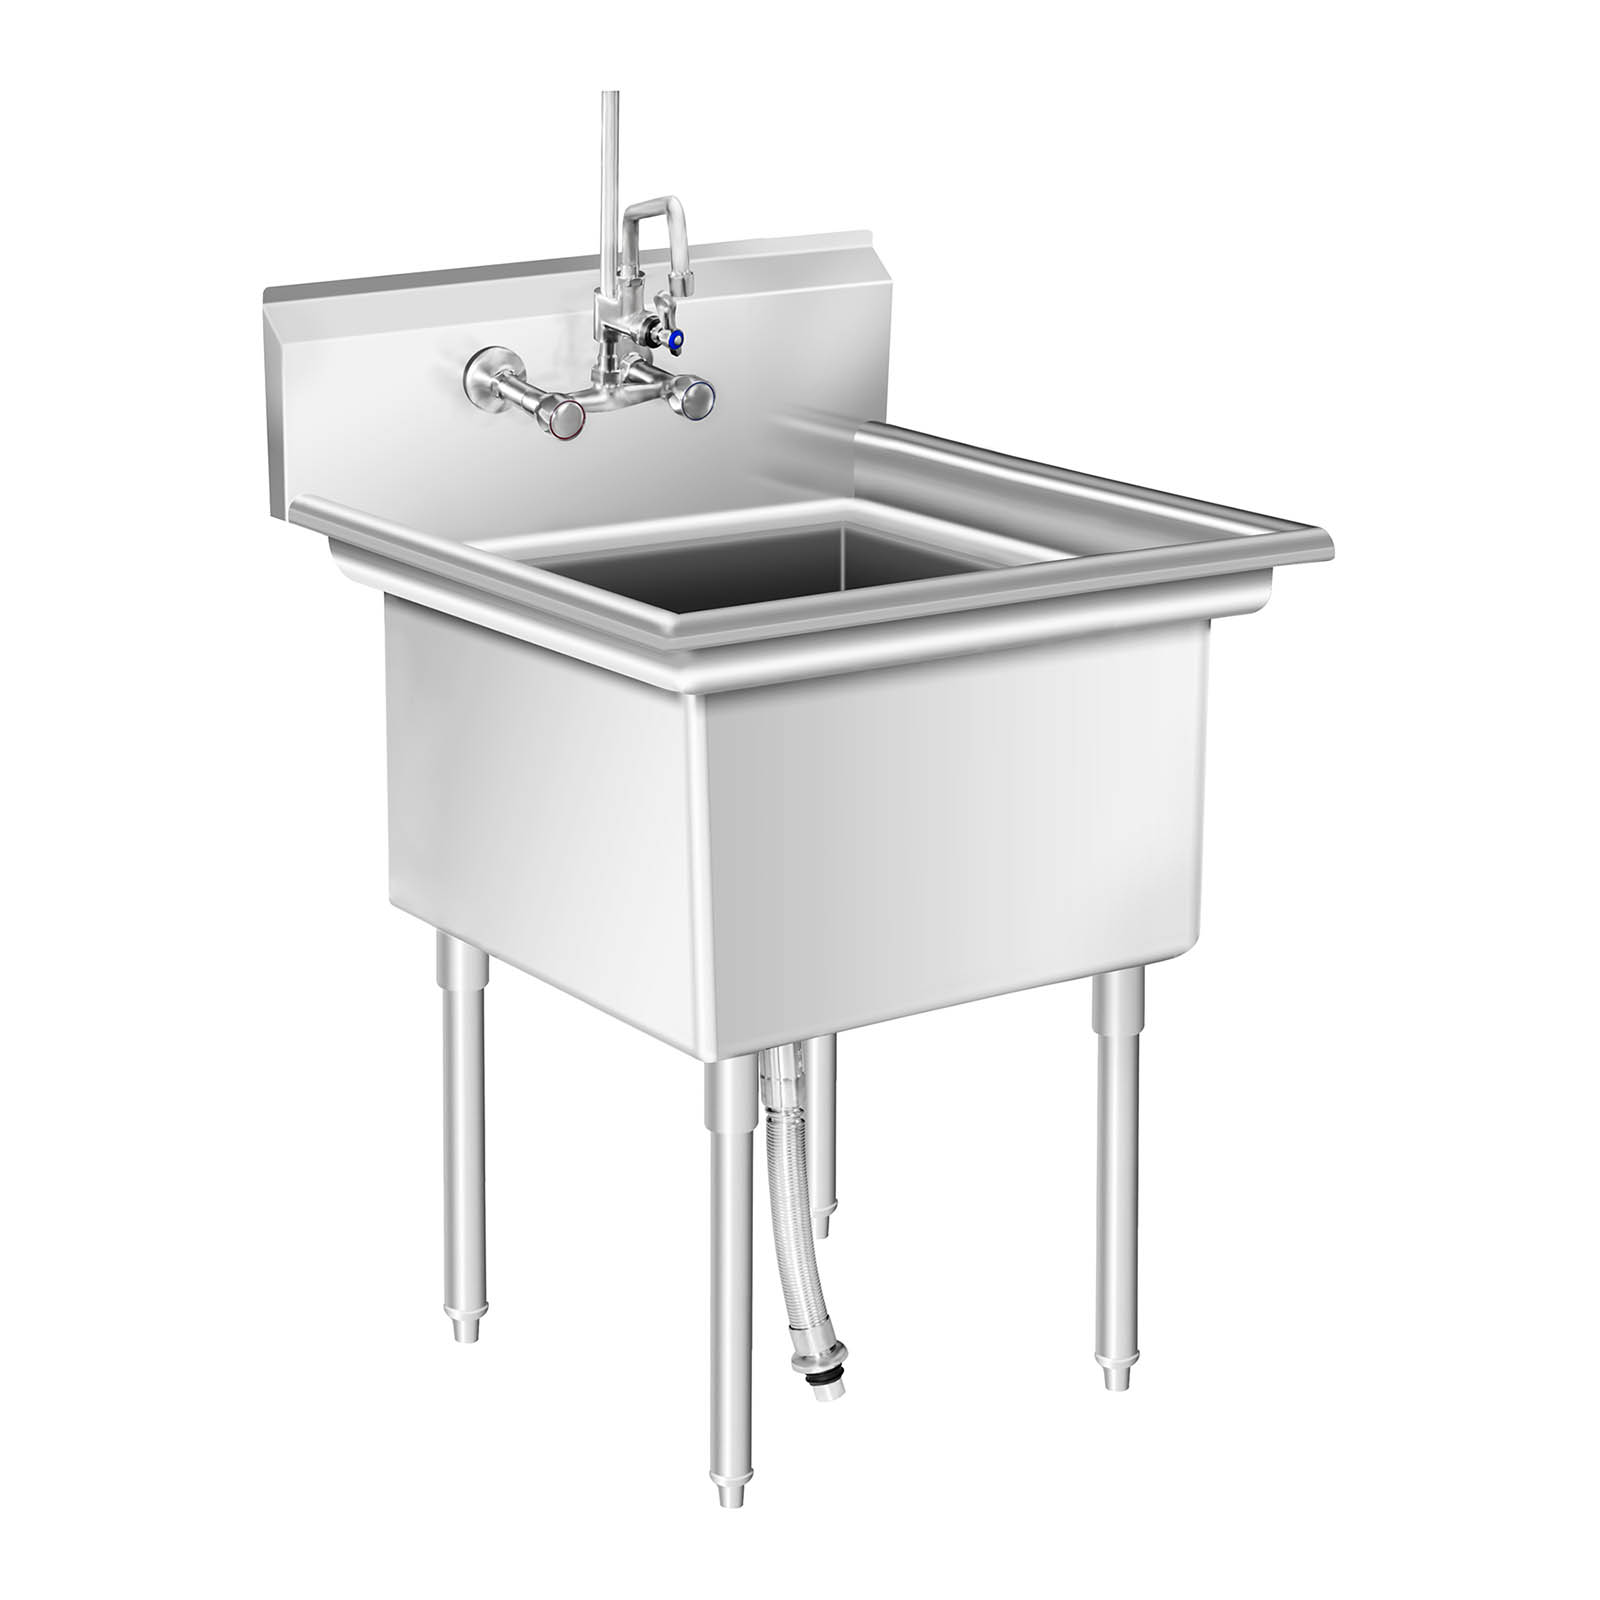 large kitchen sinks complete commercial sink unit 3 basin stainless